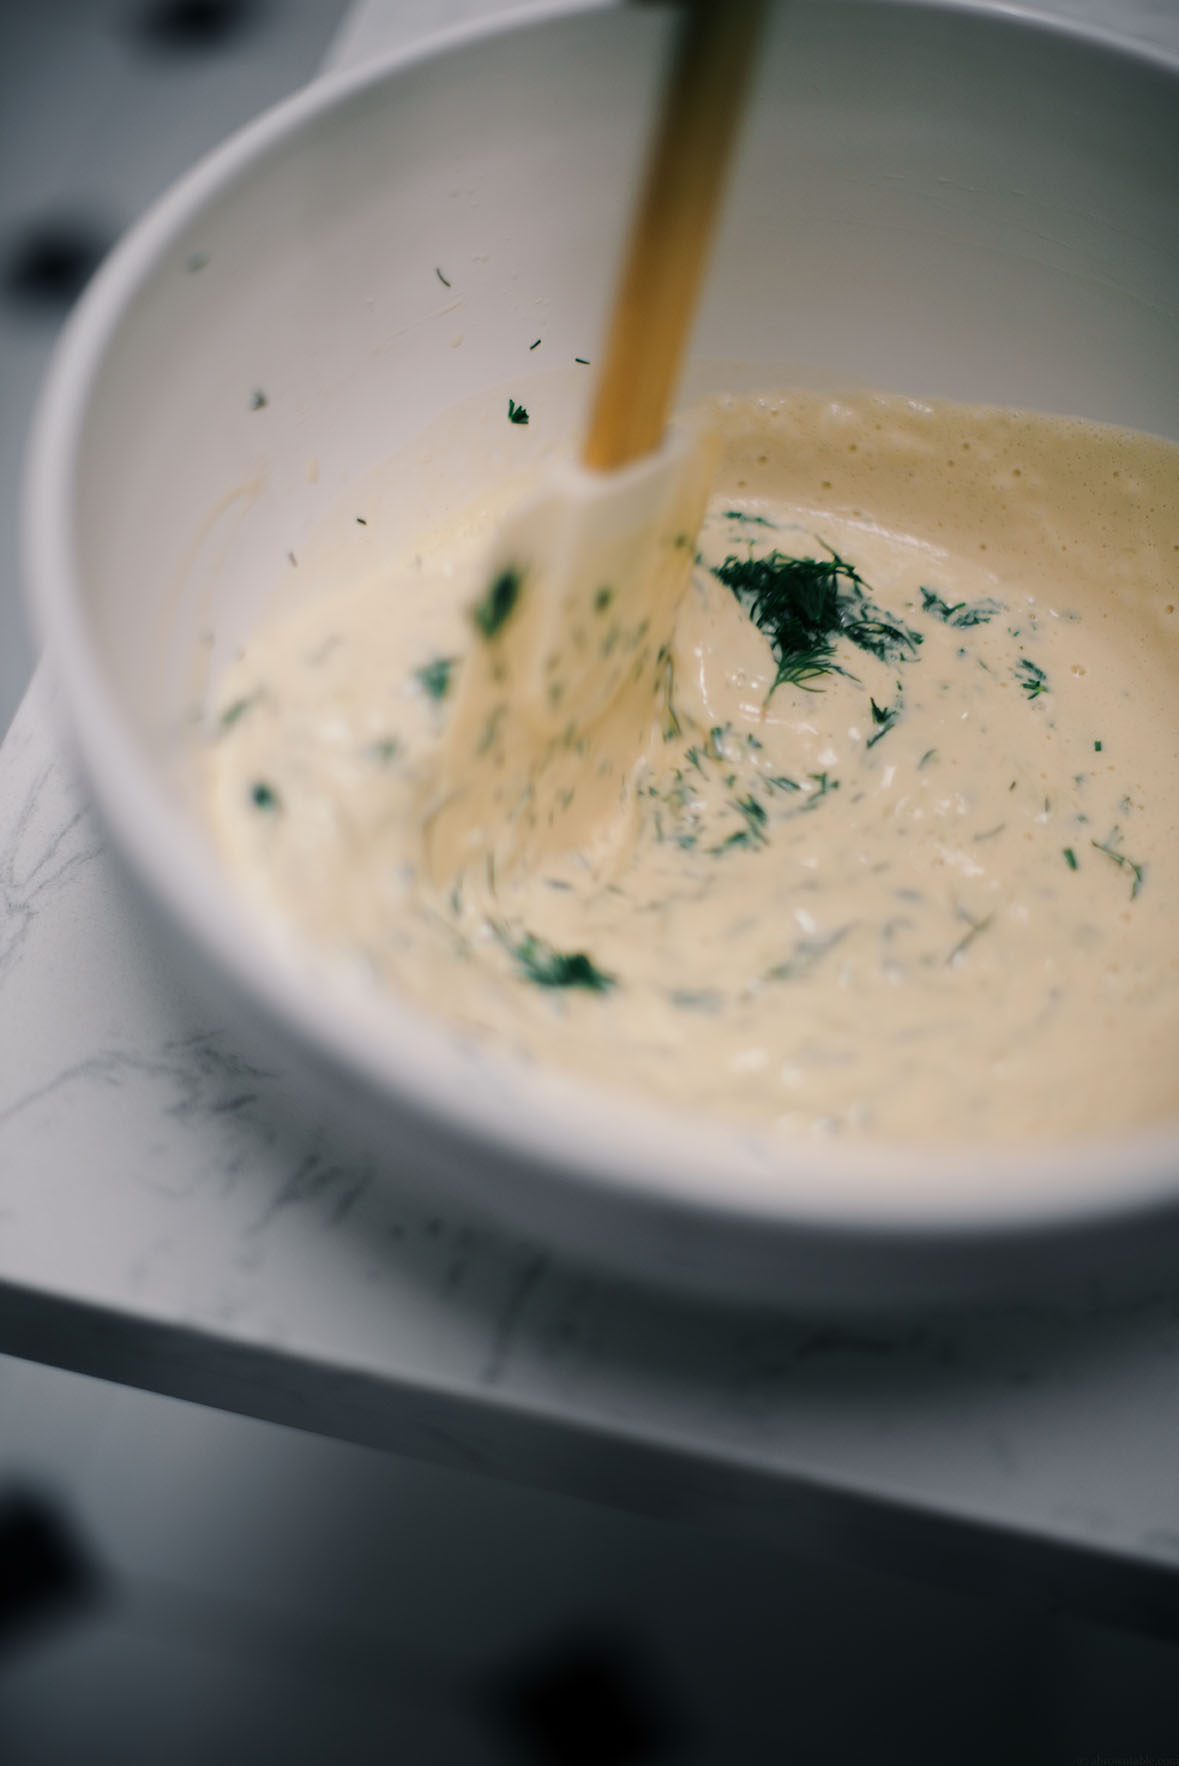 lindsey's chickpea based yogurt-free tzatziki dip | A Brown Table